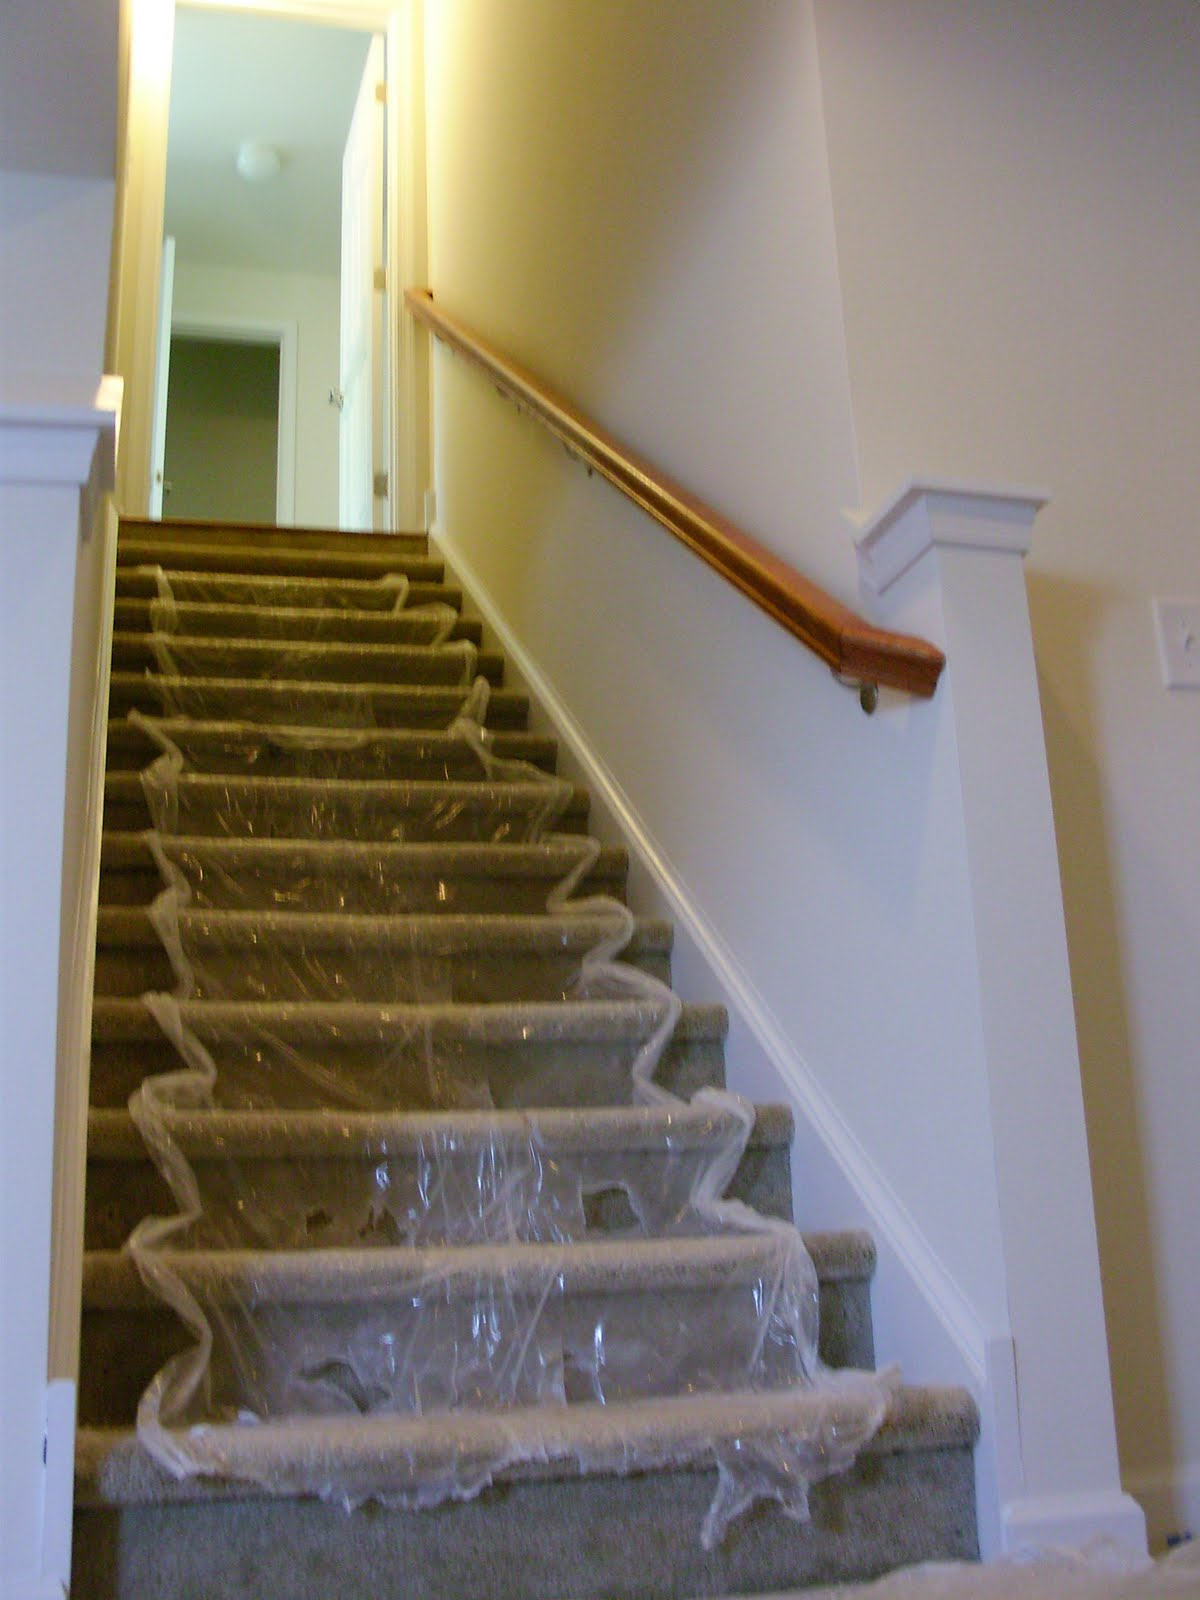 Basement Stair Trim: Our 1st New Home: Building A Ryan Homes Milan: Exterior